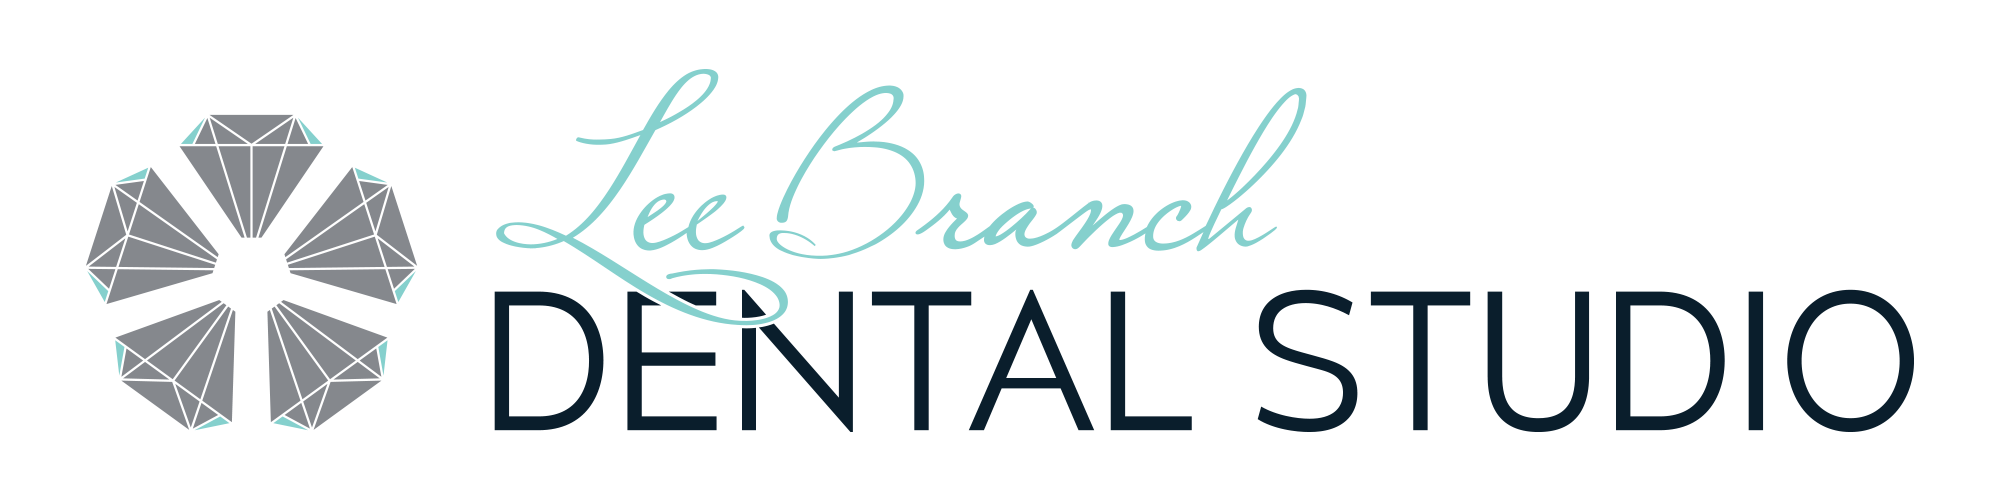 leebranch-dental_logo_new-4